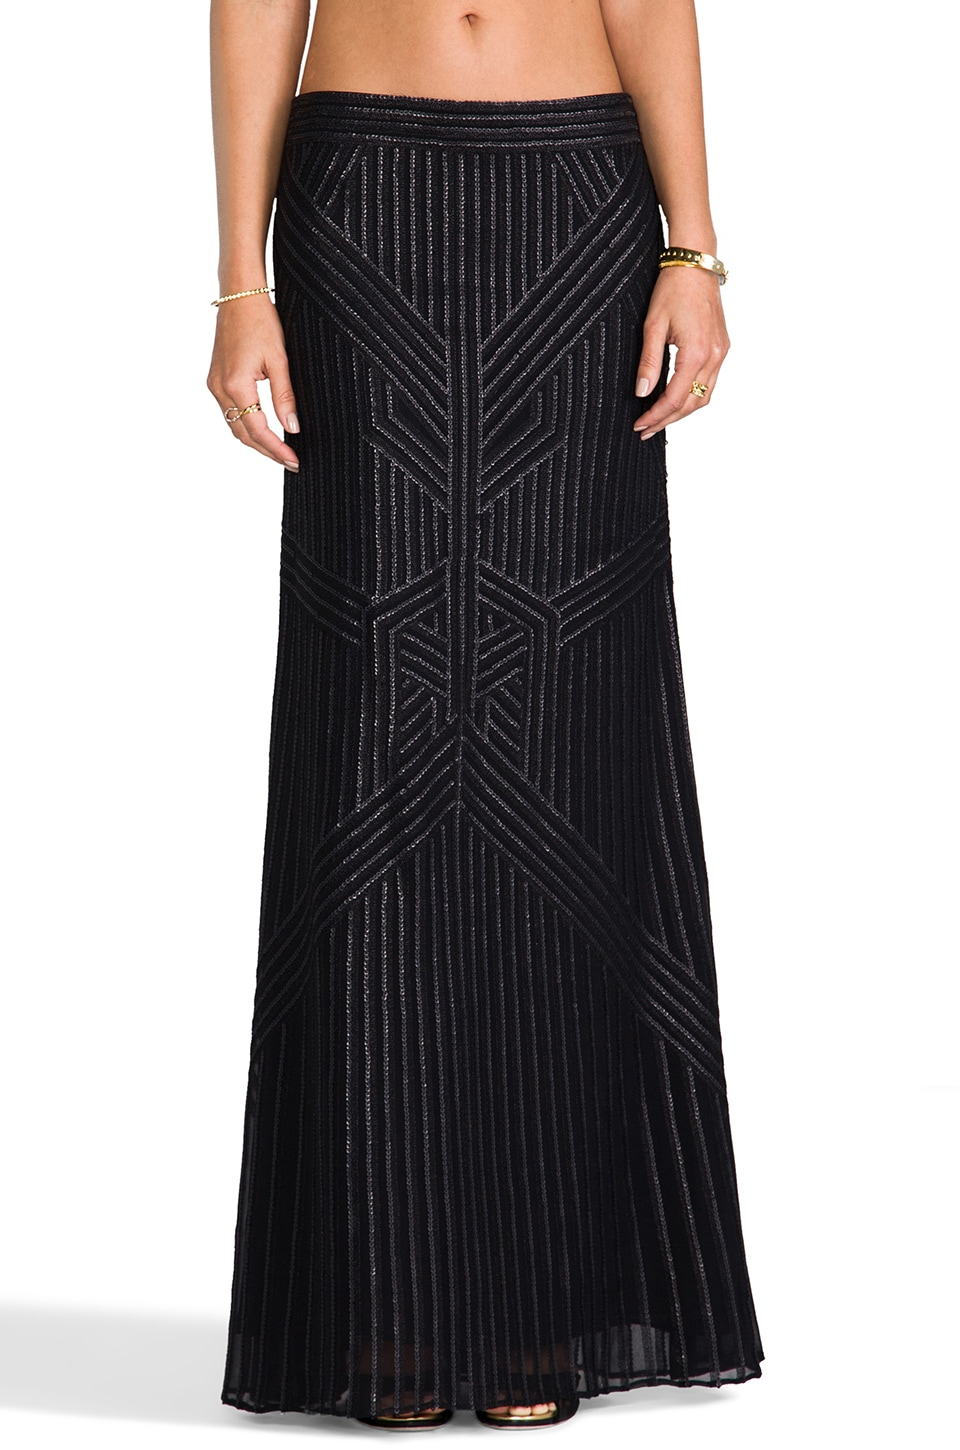 RACHEL ZOE Pearl Sequin Maxi Skirt in Black